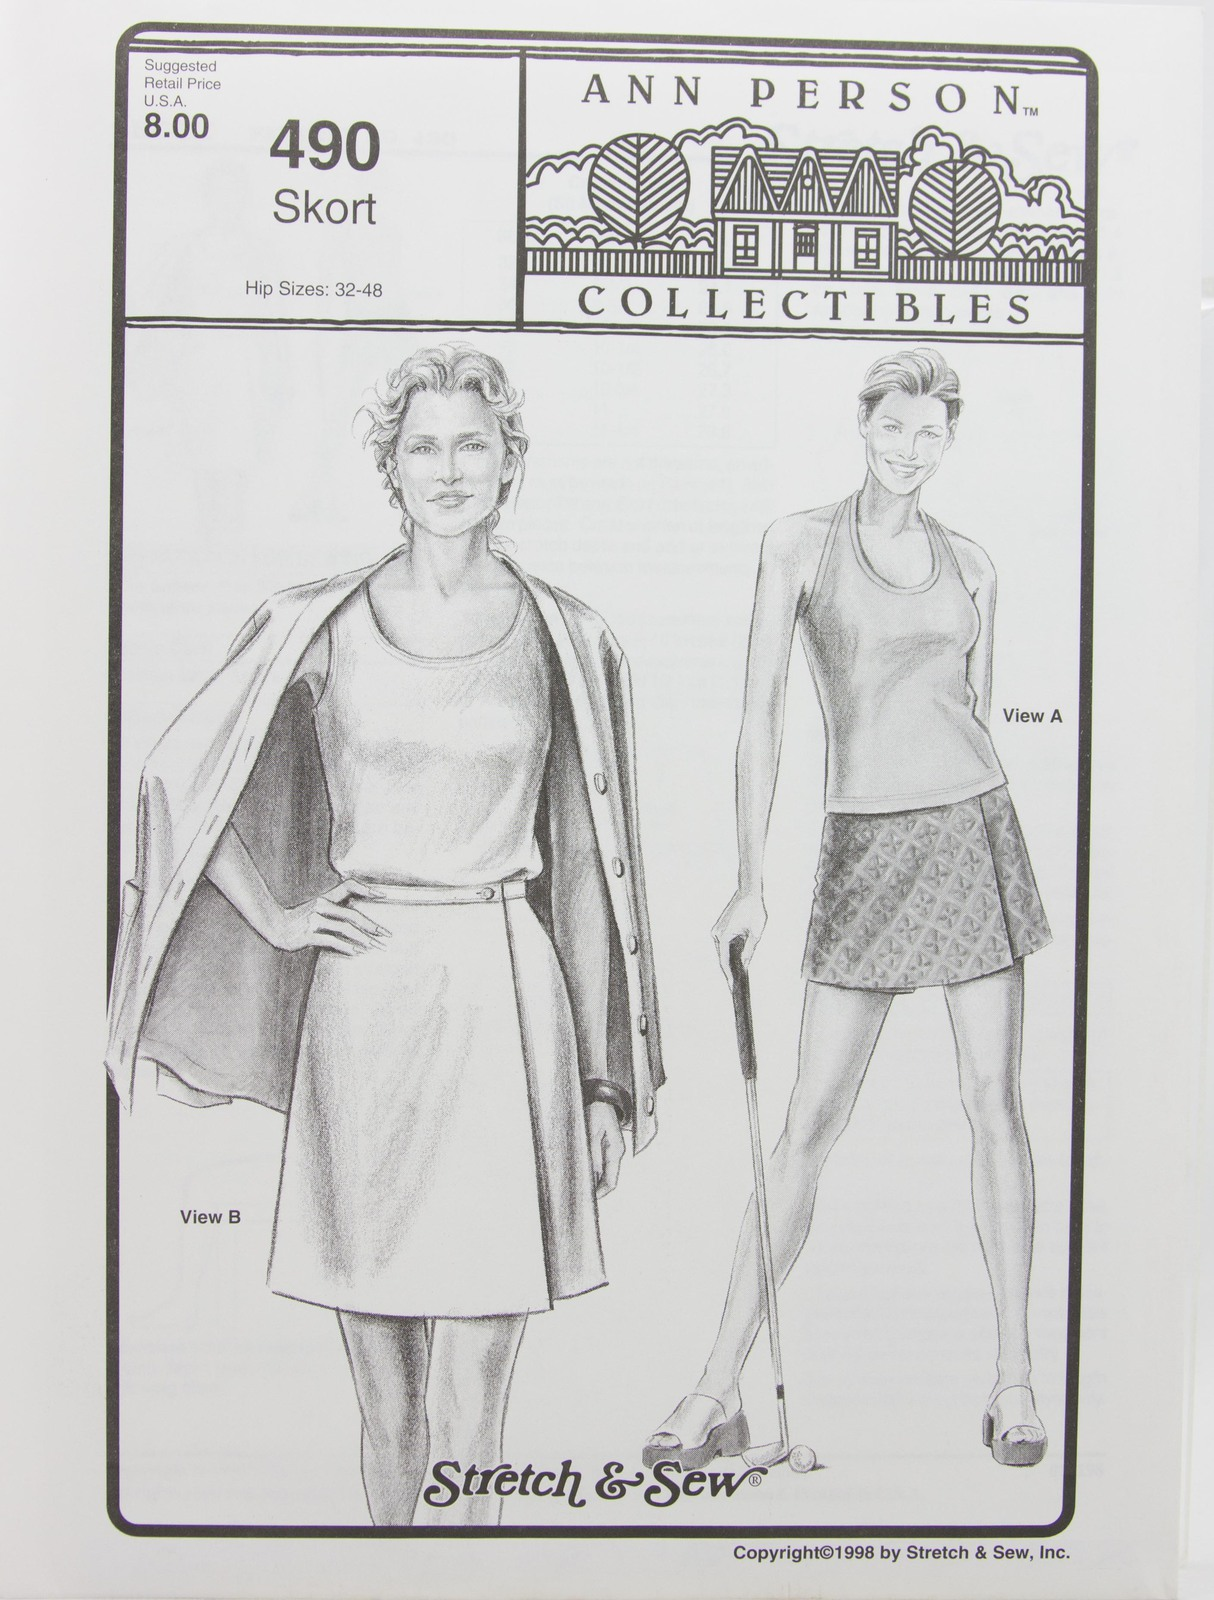 Stretch & Sew Sewing Pattern- Ann Person Collectibles #490 - Skort